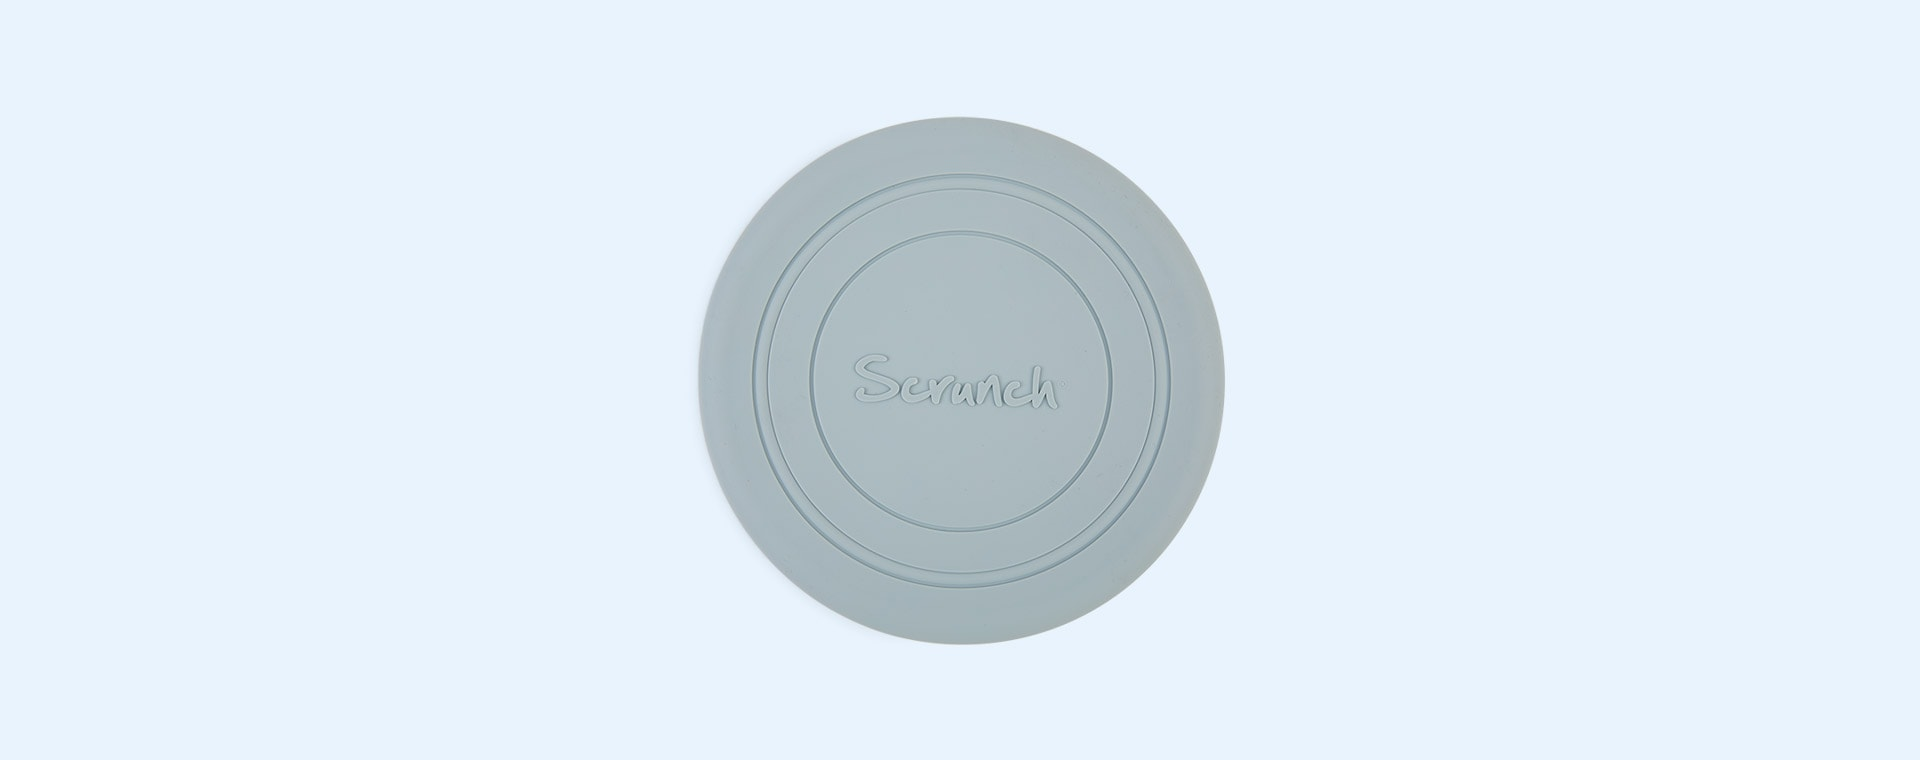 Duck Egg Blue Scrunch Scrunch Collapsible Frisbee